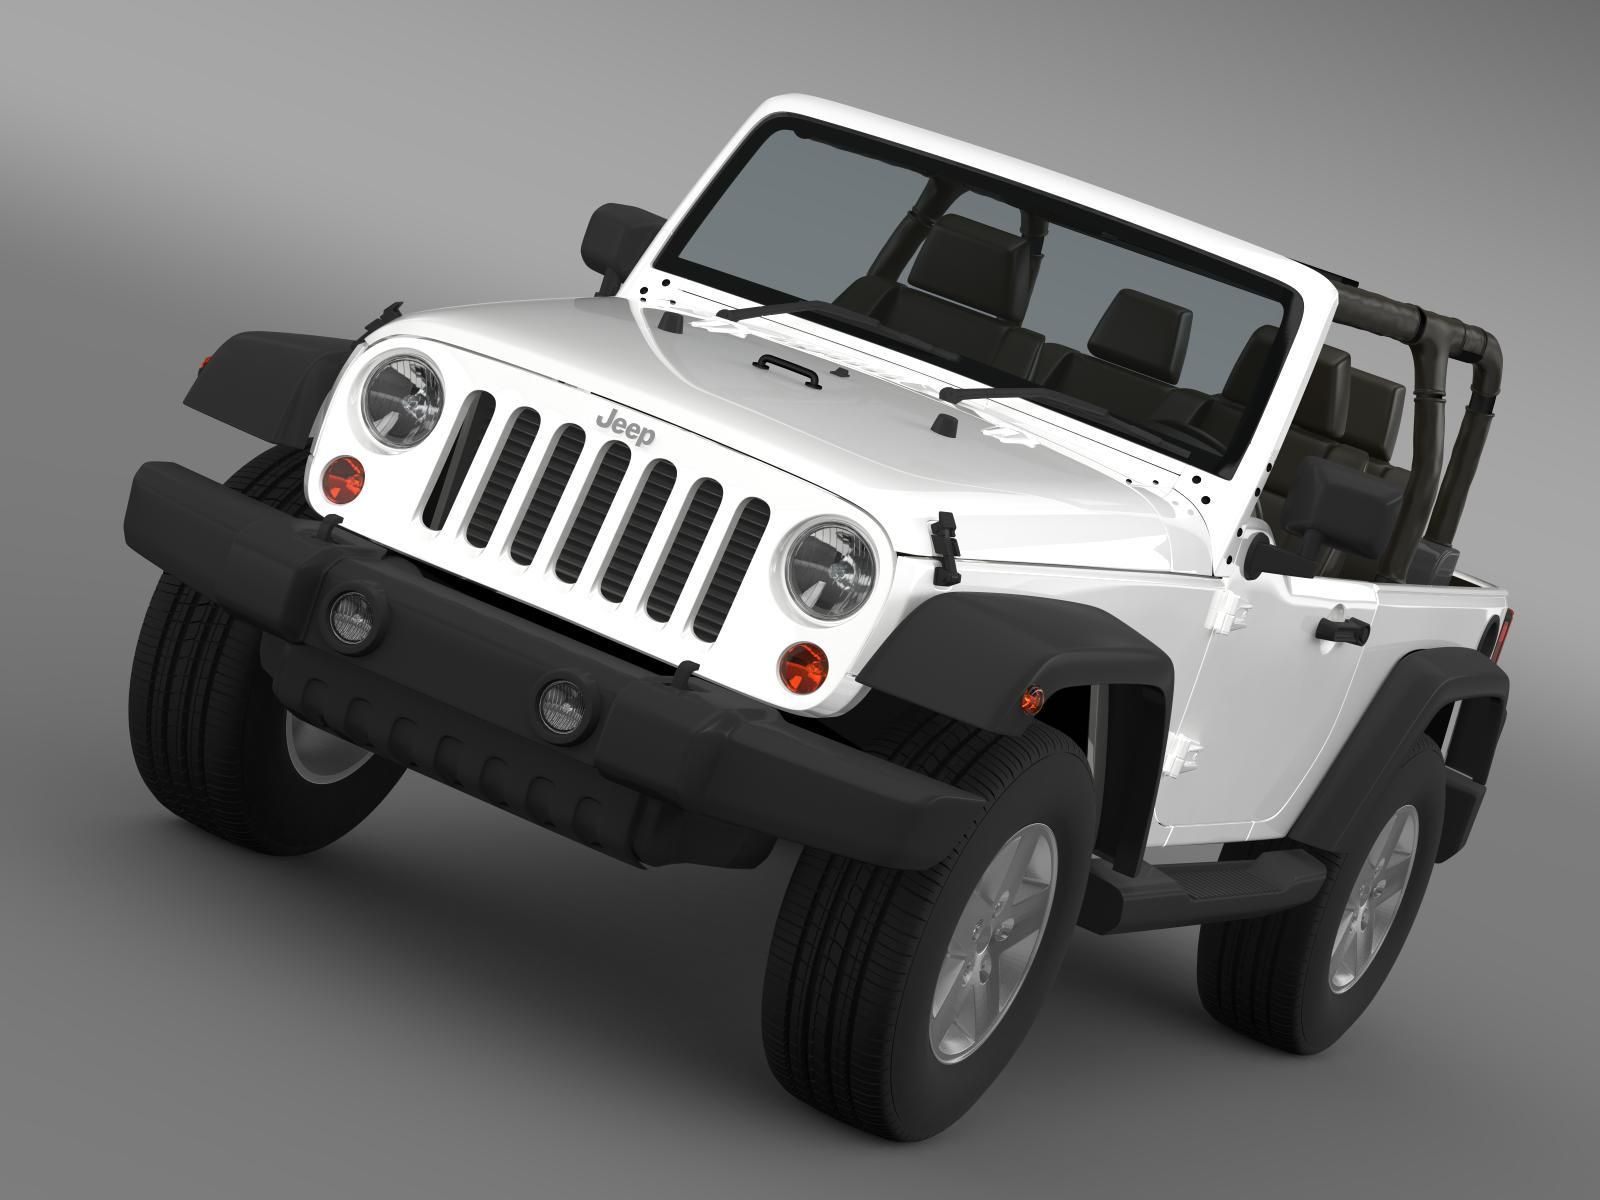 Jeep Wrangler Islander Edition 2010 (With images) Jeep